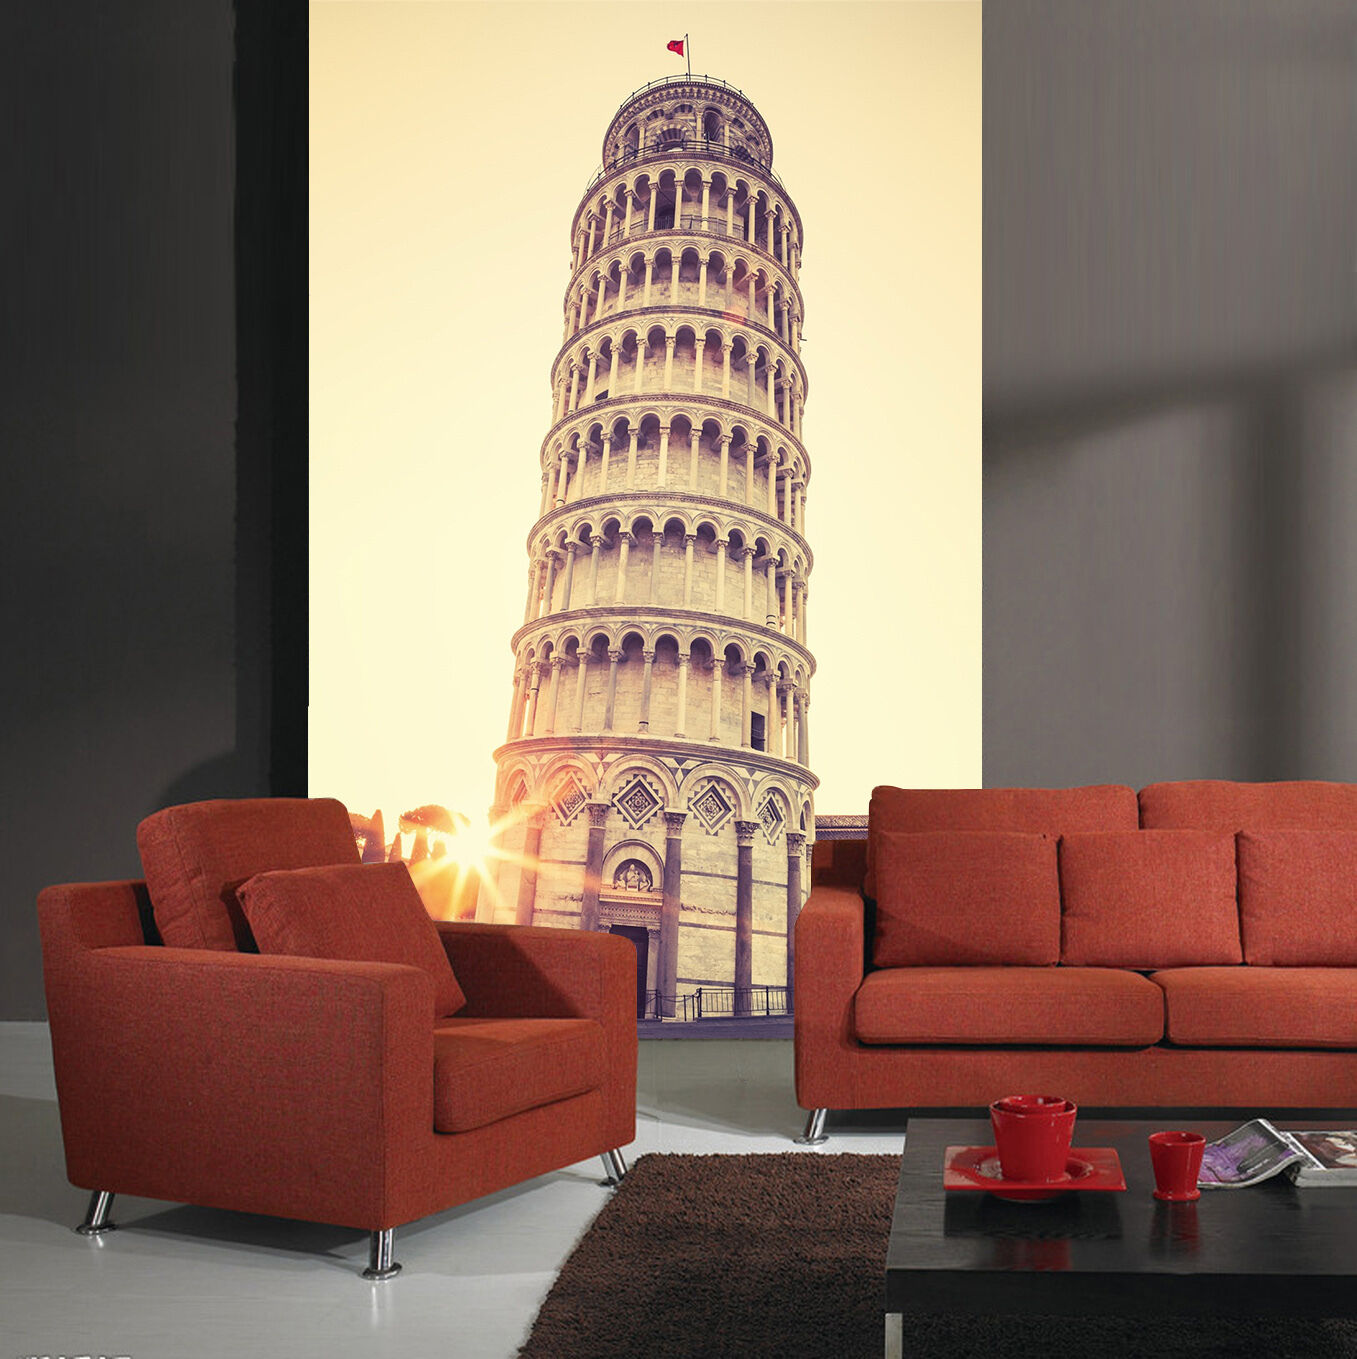 3D Leaning Tower 616 WallPaper Murals Wall Print Decal Wall Deco AJ WALLPAPER